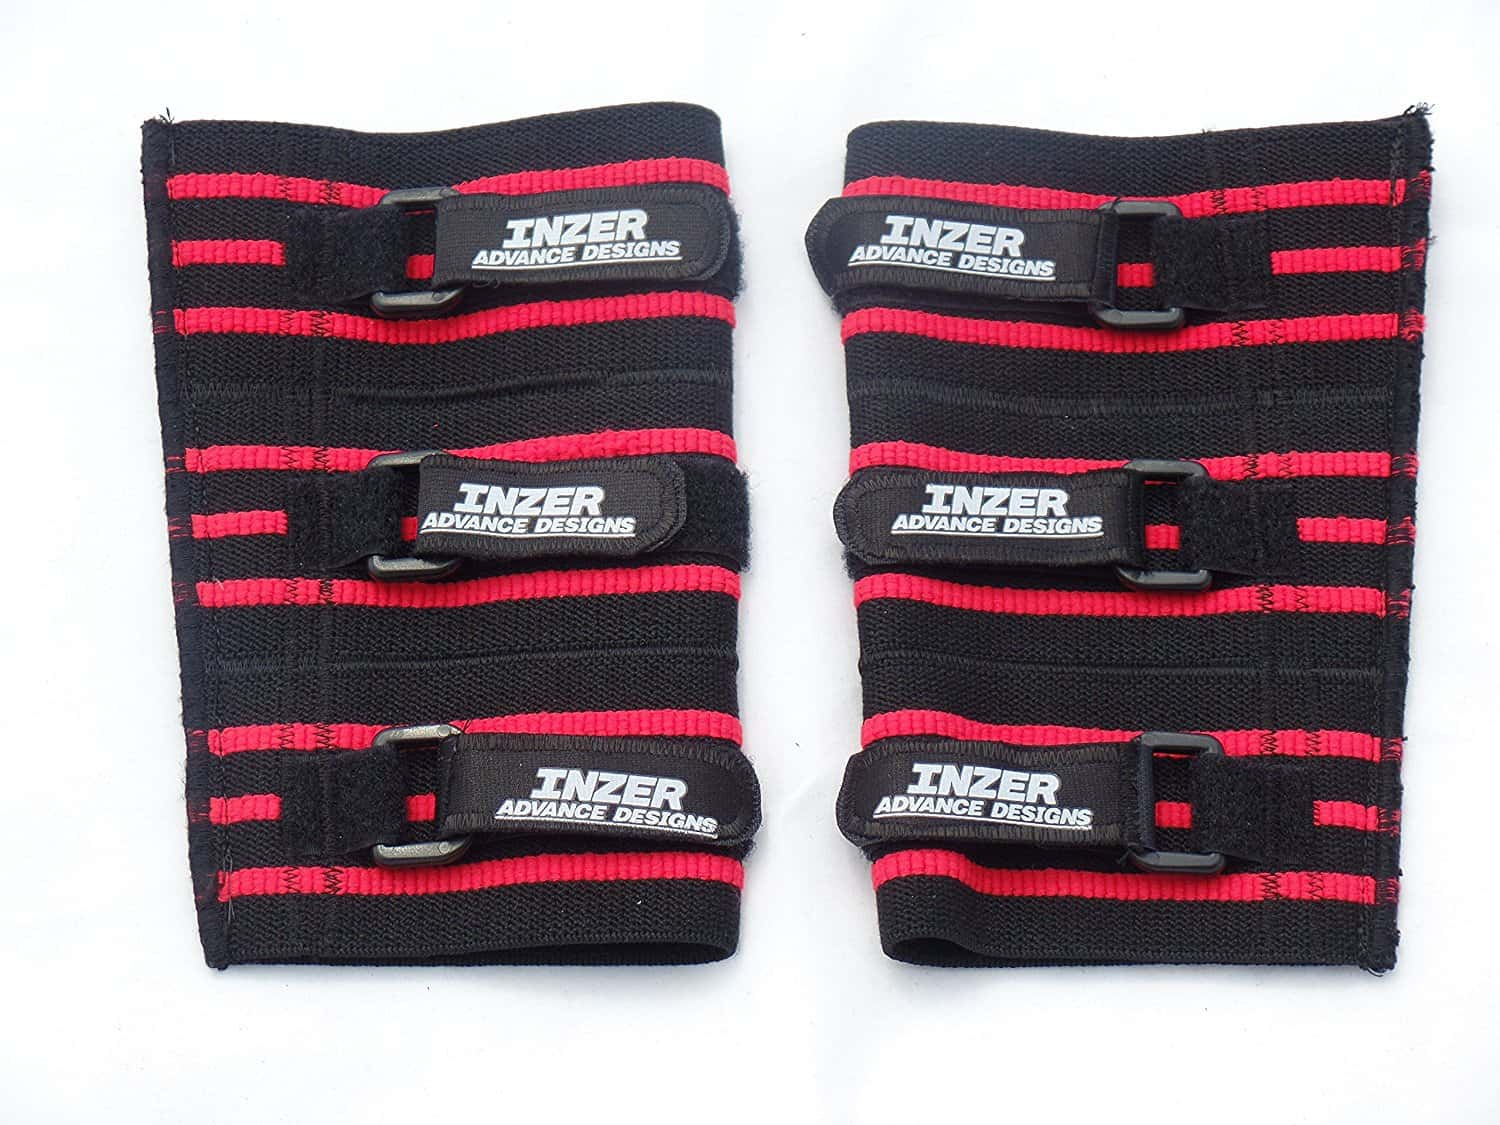 Inzer ZT Elbow Sleeves for Powerlifitng